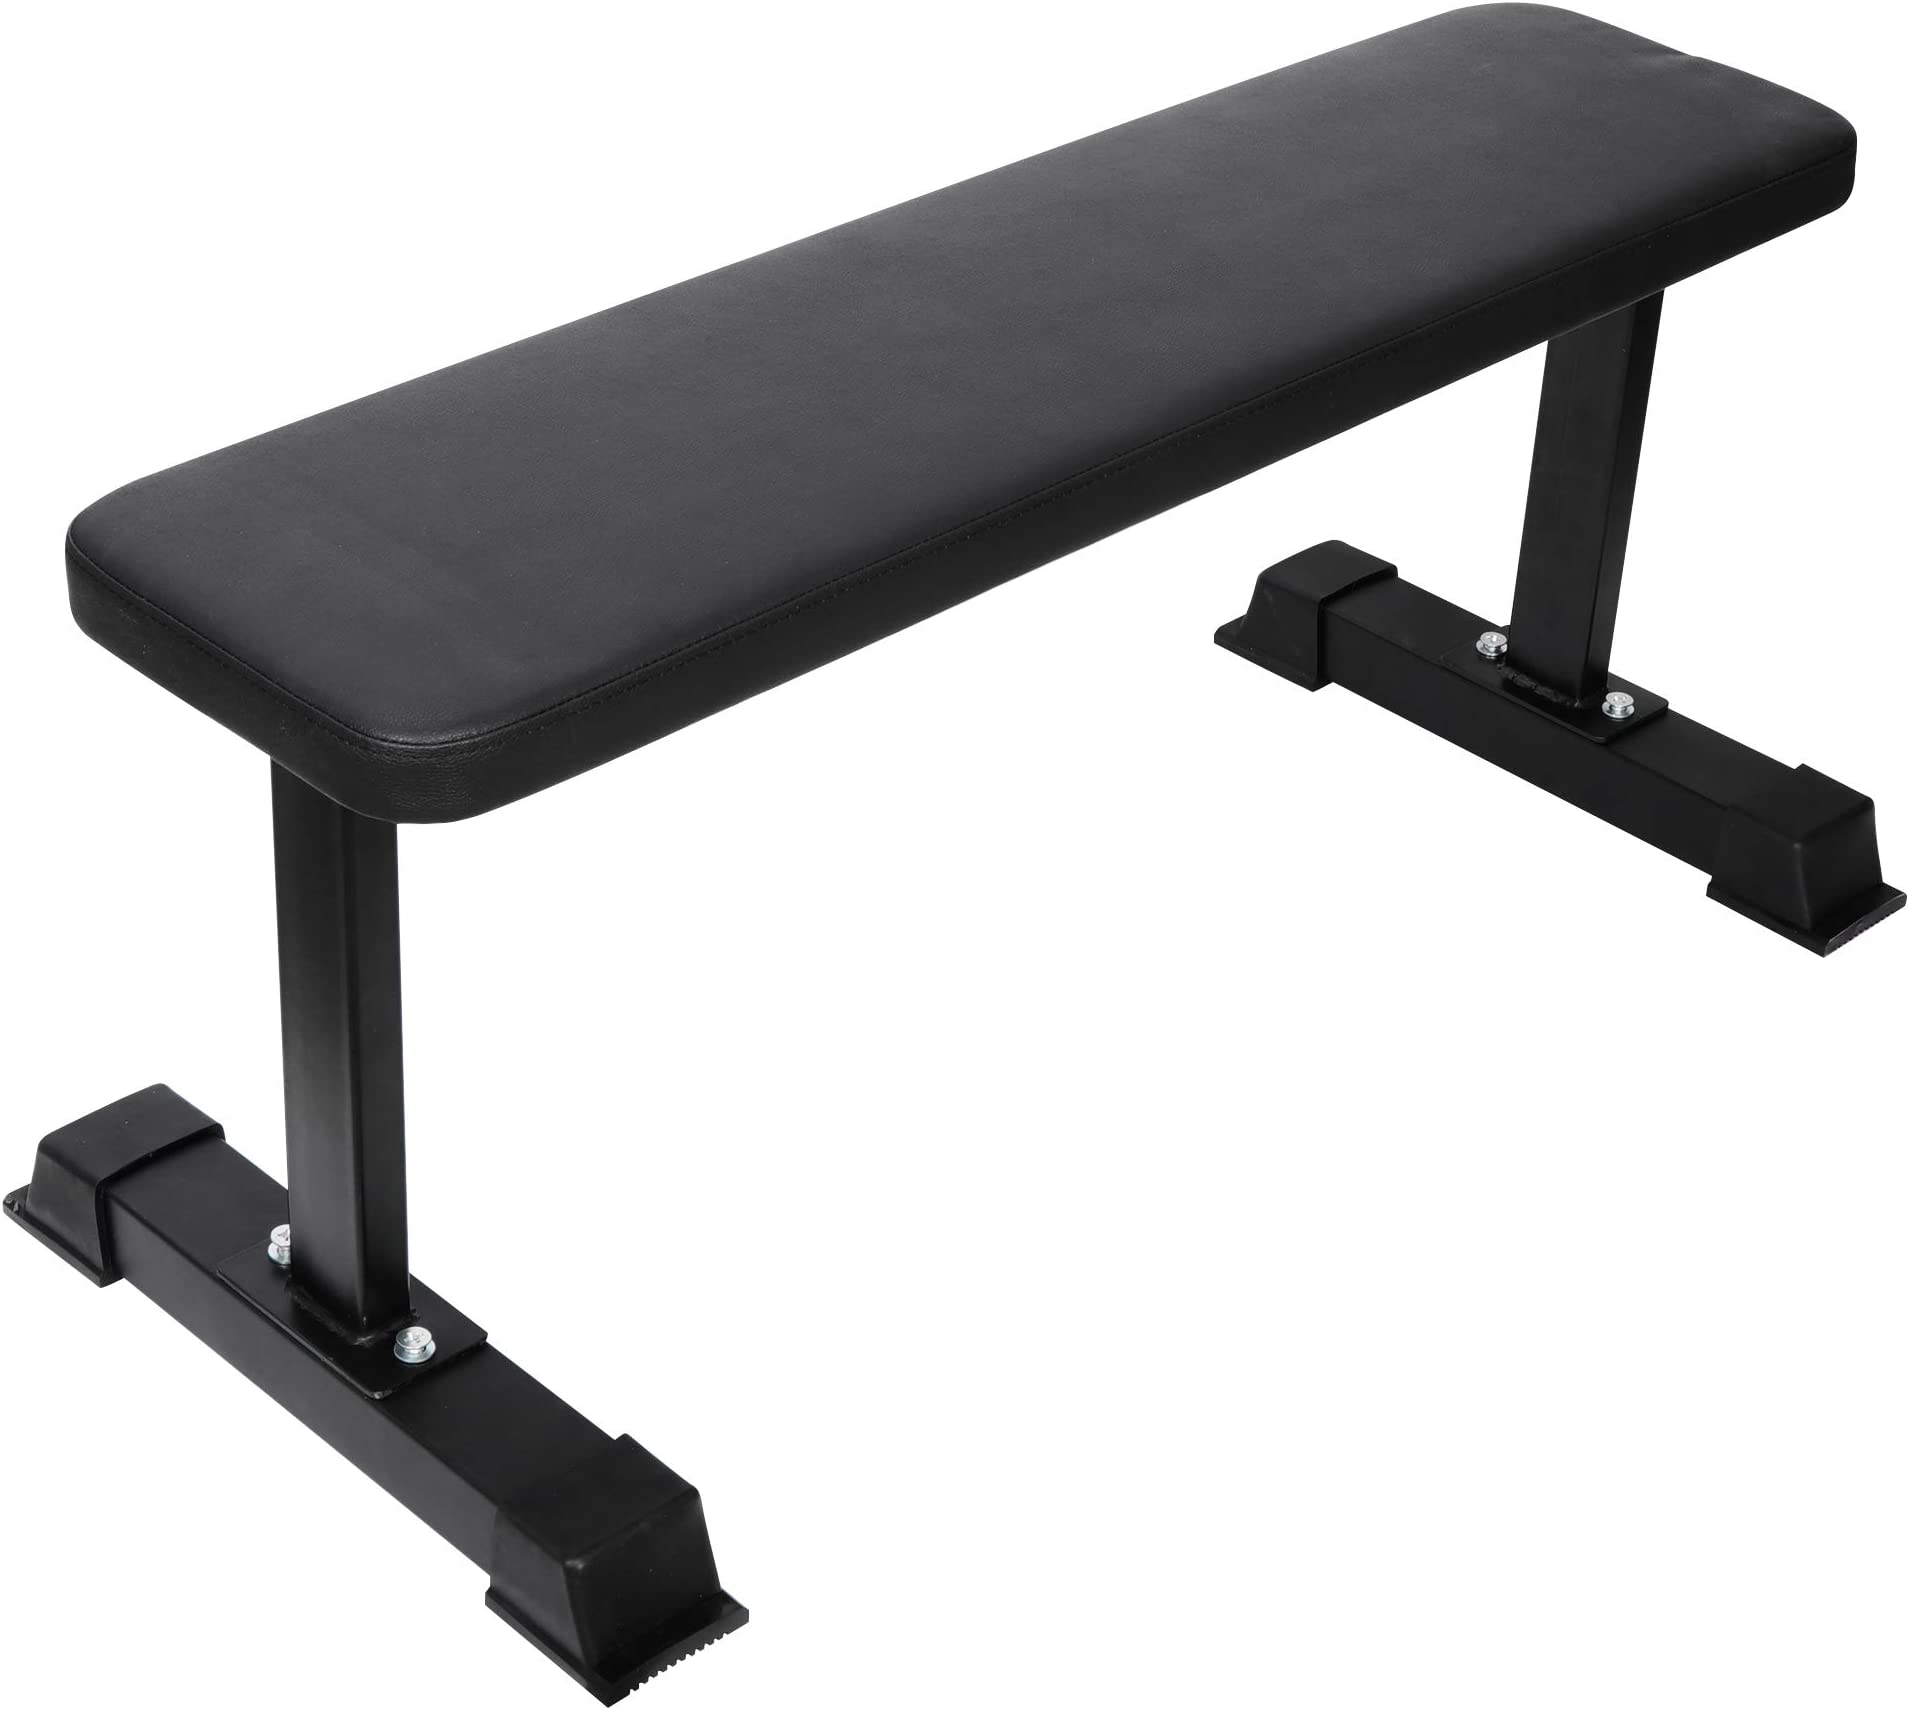 Folding Fitness Flat Weight Lifting Bench Dumbbell Board Home Gym Body Workout